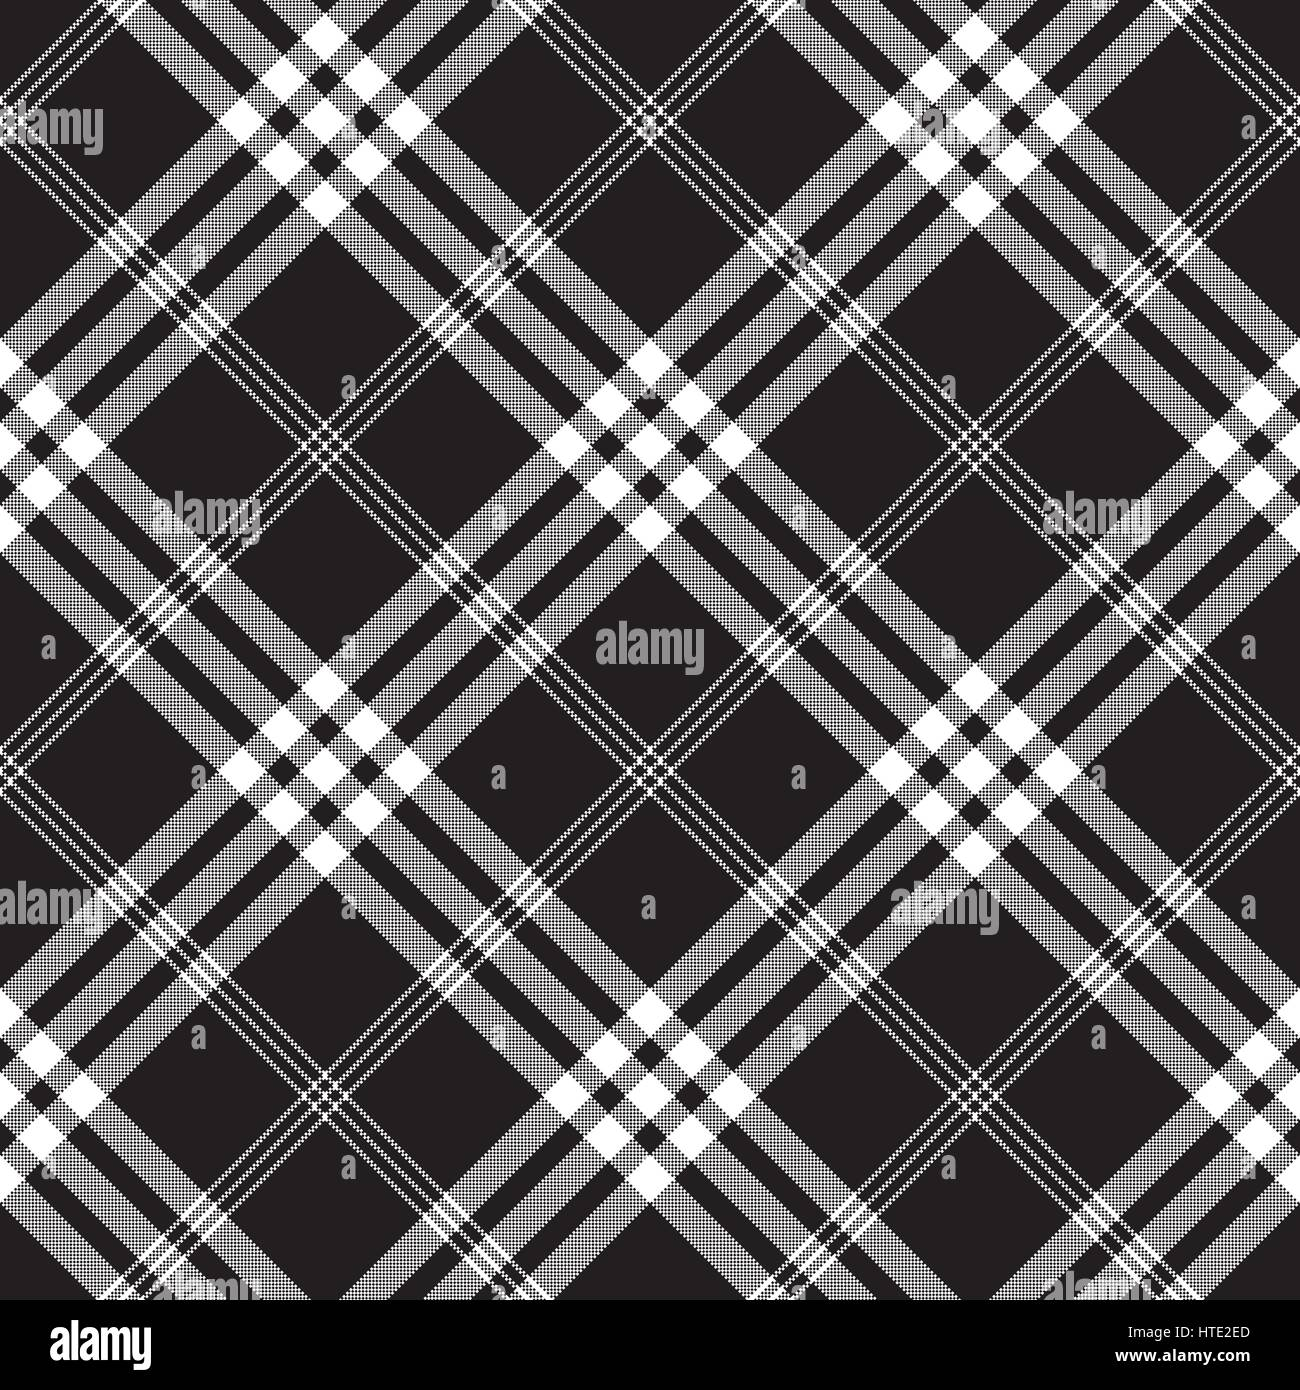 Seamless black and white checkered texture stock images image - Black And White Check Pixel Square Fabric Texture Seamless Pattern Vector Illustration